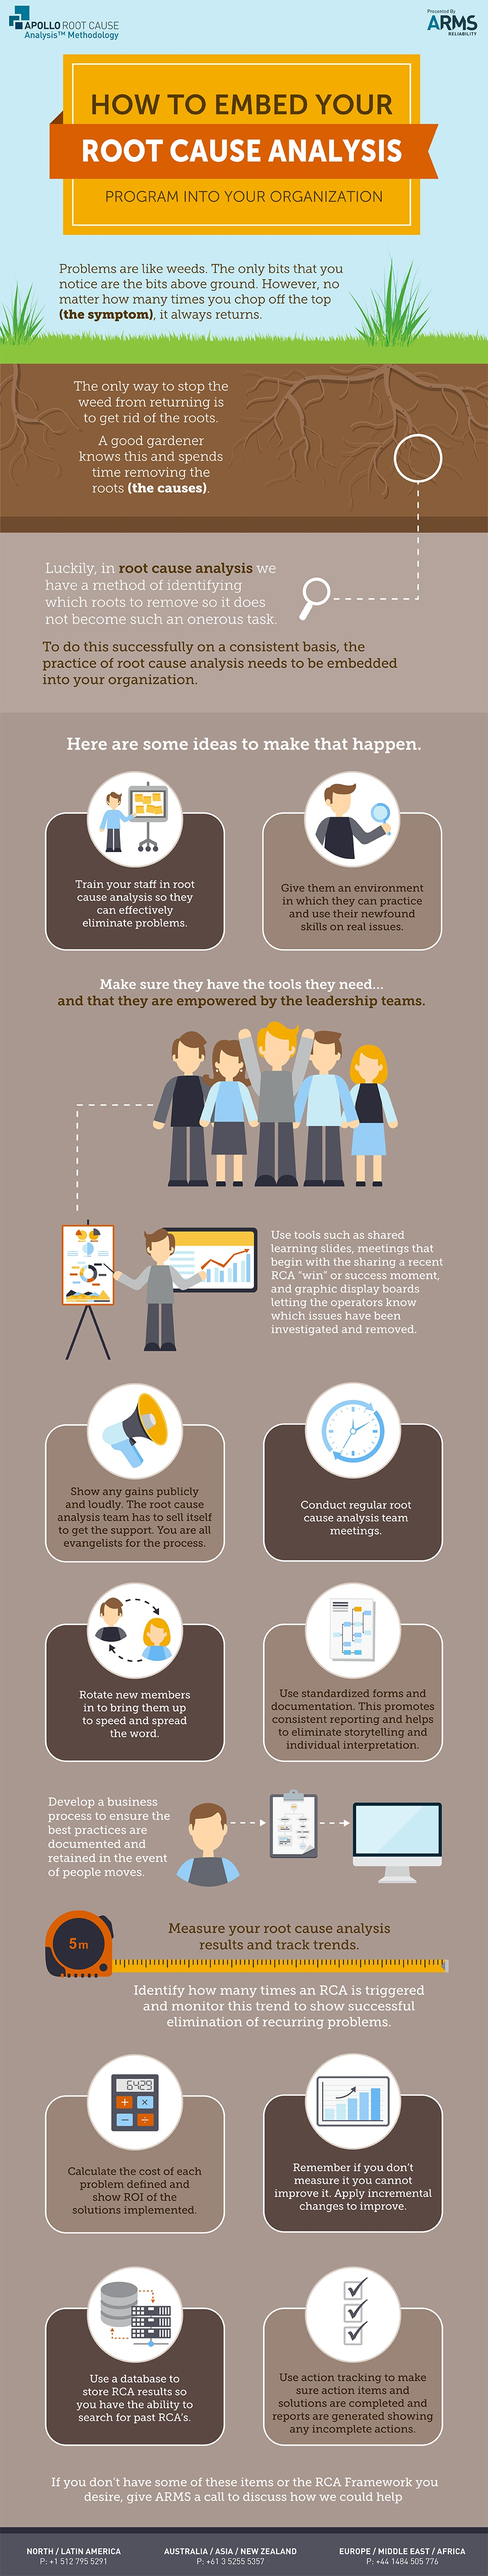 HowToEmbedRootCauseAnalysis_Infographic